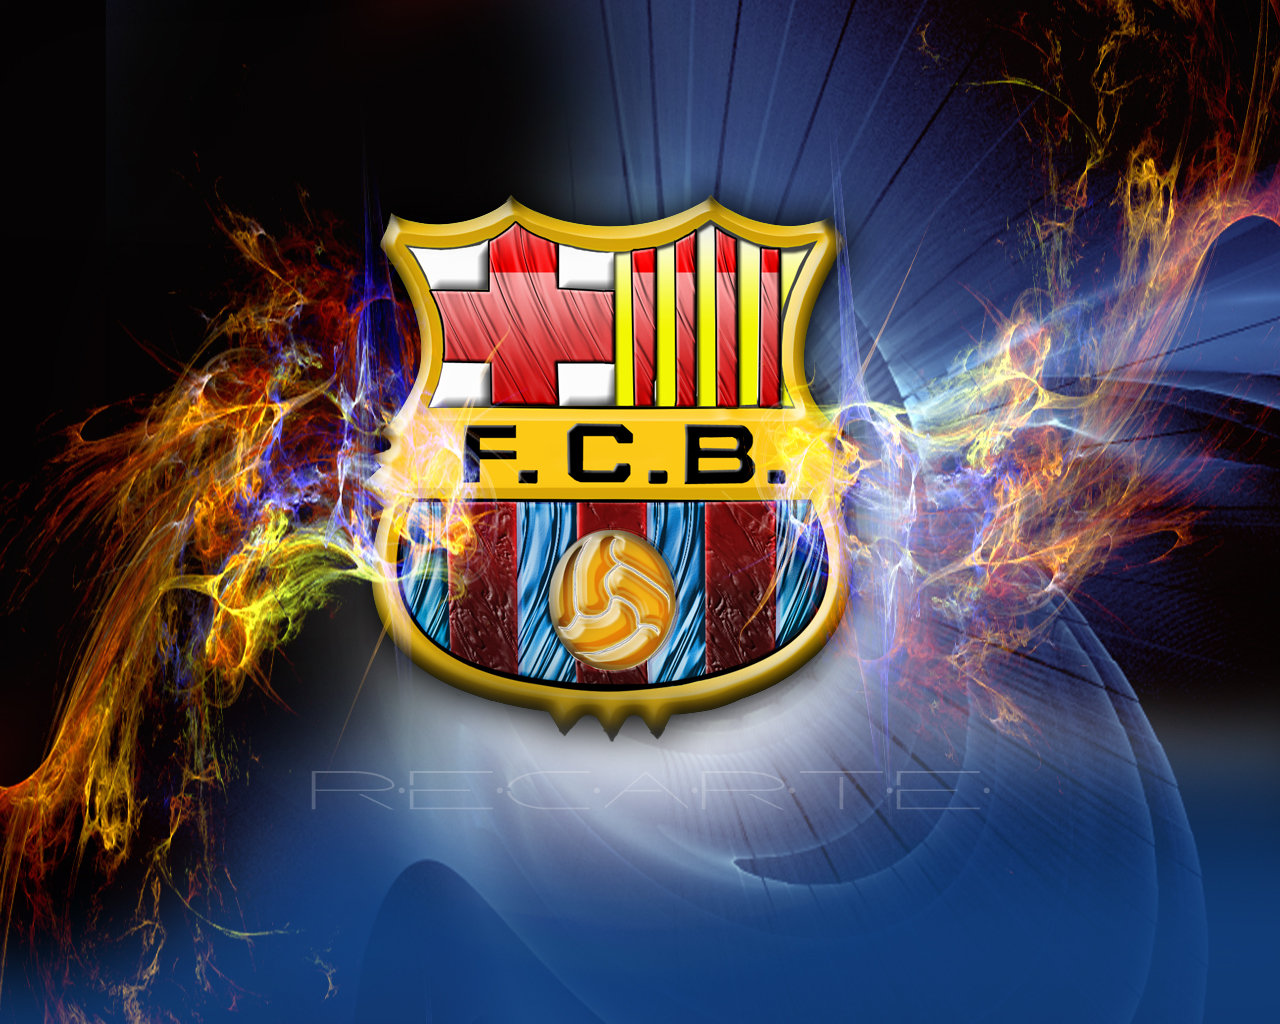 All About Japanese: FCB - Barcelona Logos